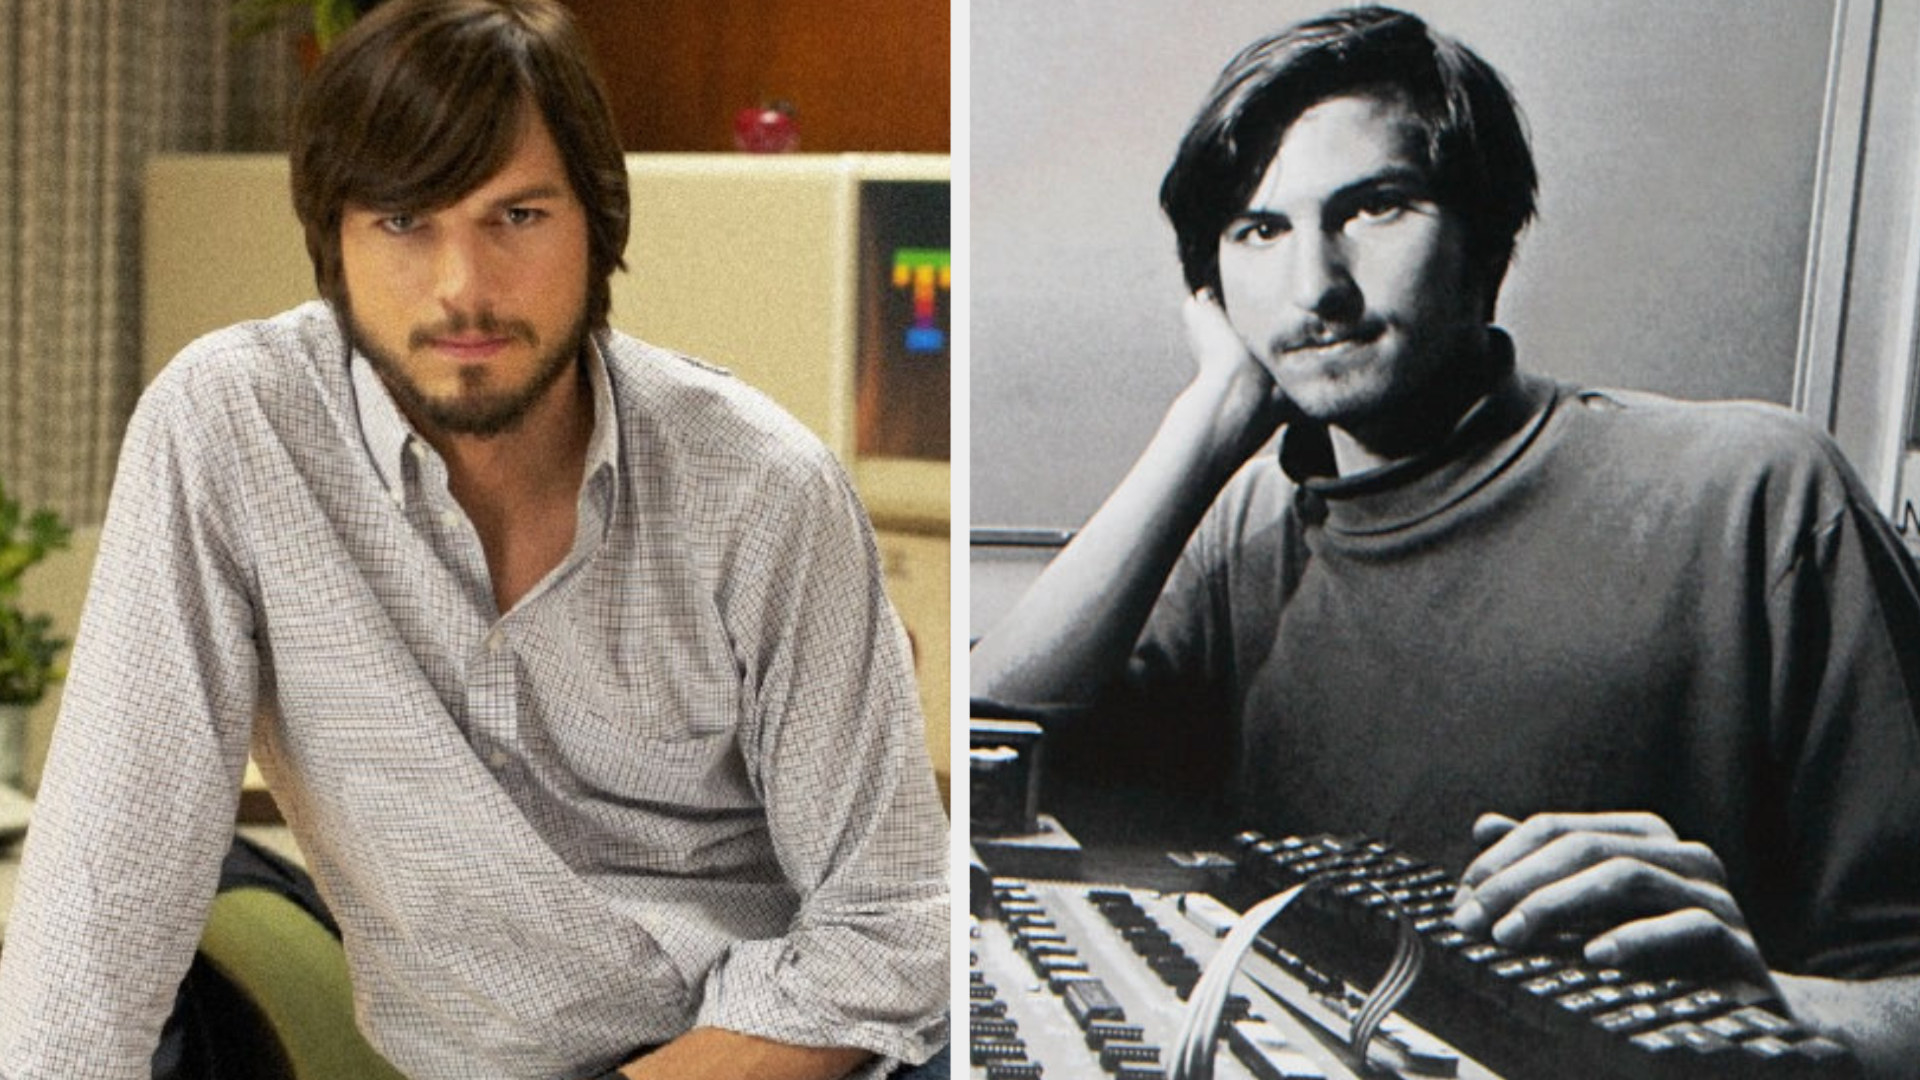 Ashton Kutcher as Steve Jobs sitting on a desk, long hair and beard, in shaggy '70s clothing; Steve Jobs resting his head on his arm, long hair and wearing a turtleneck, posing with one of the earliest models of the Apple computer